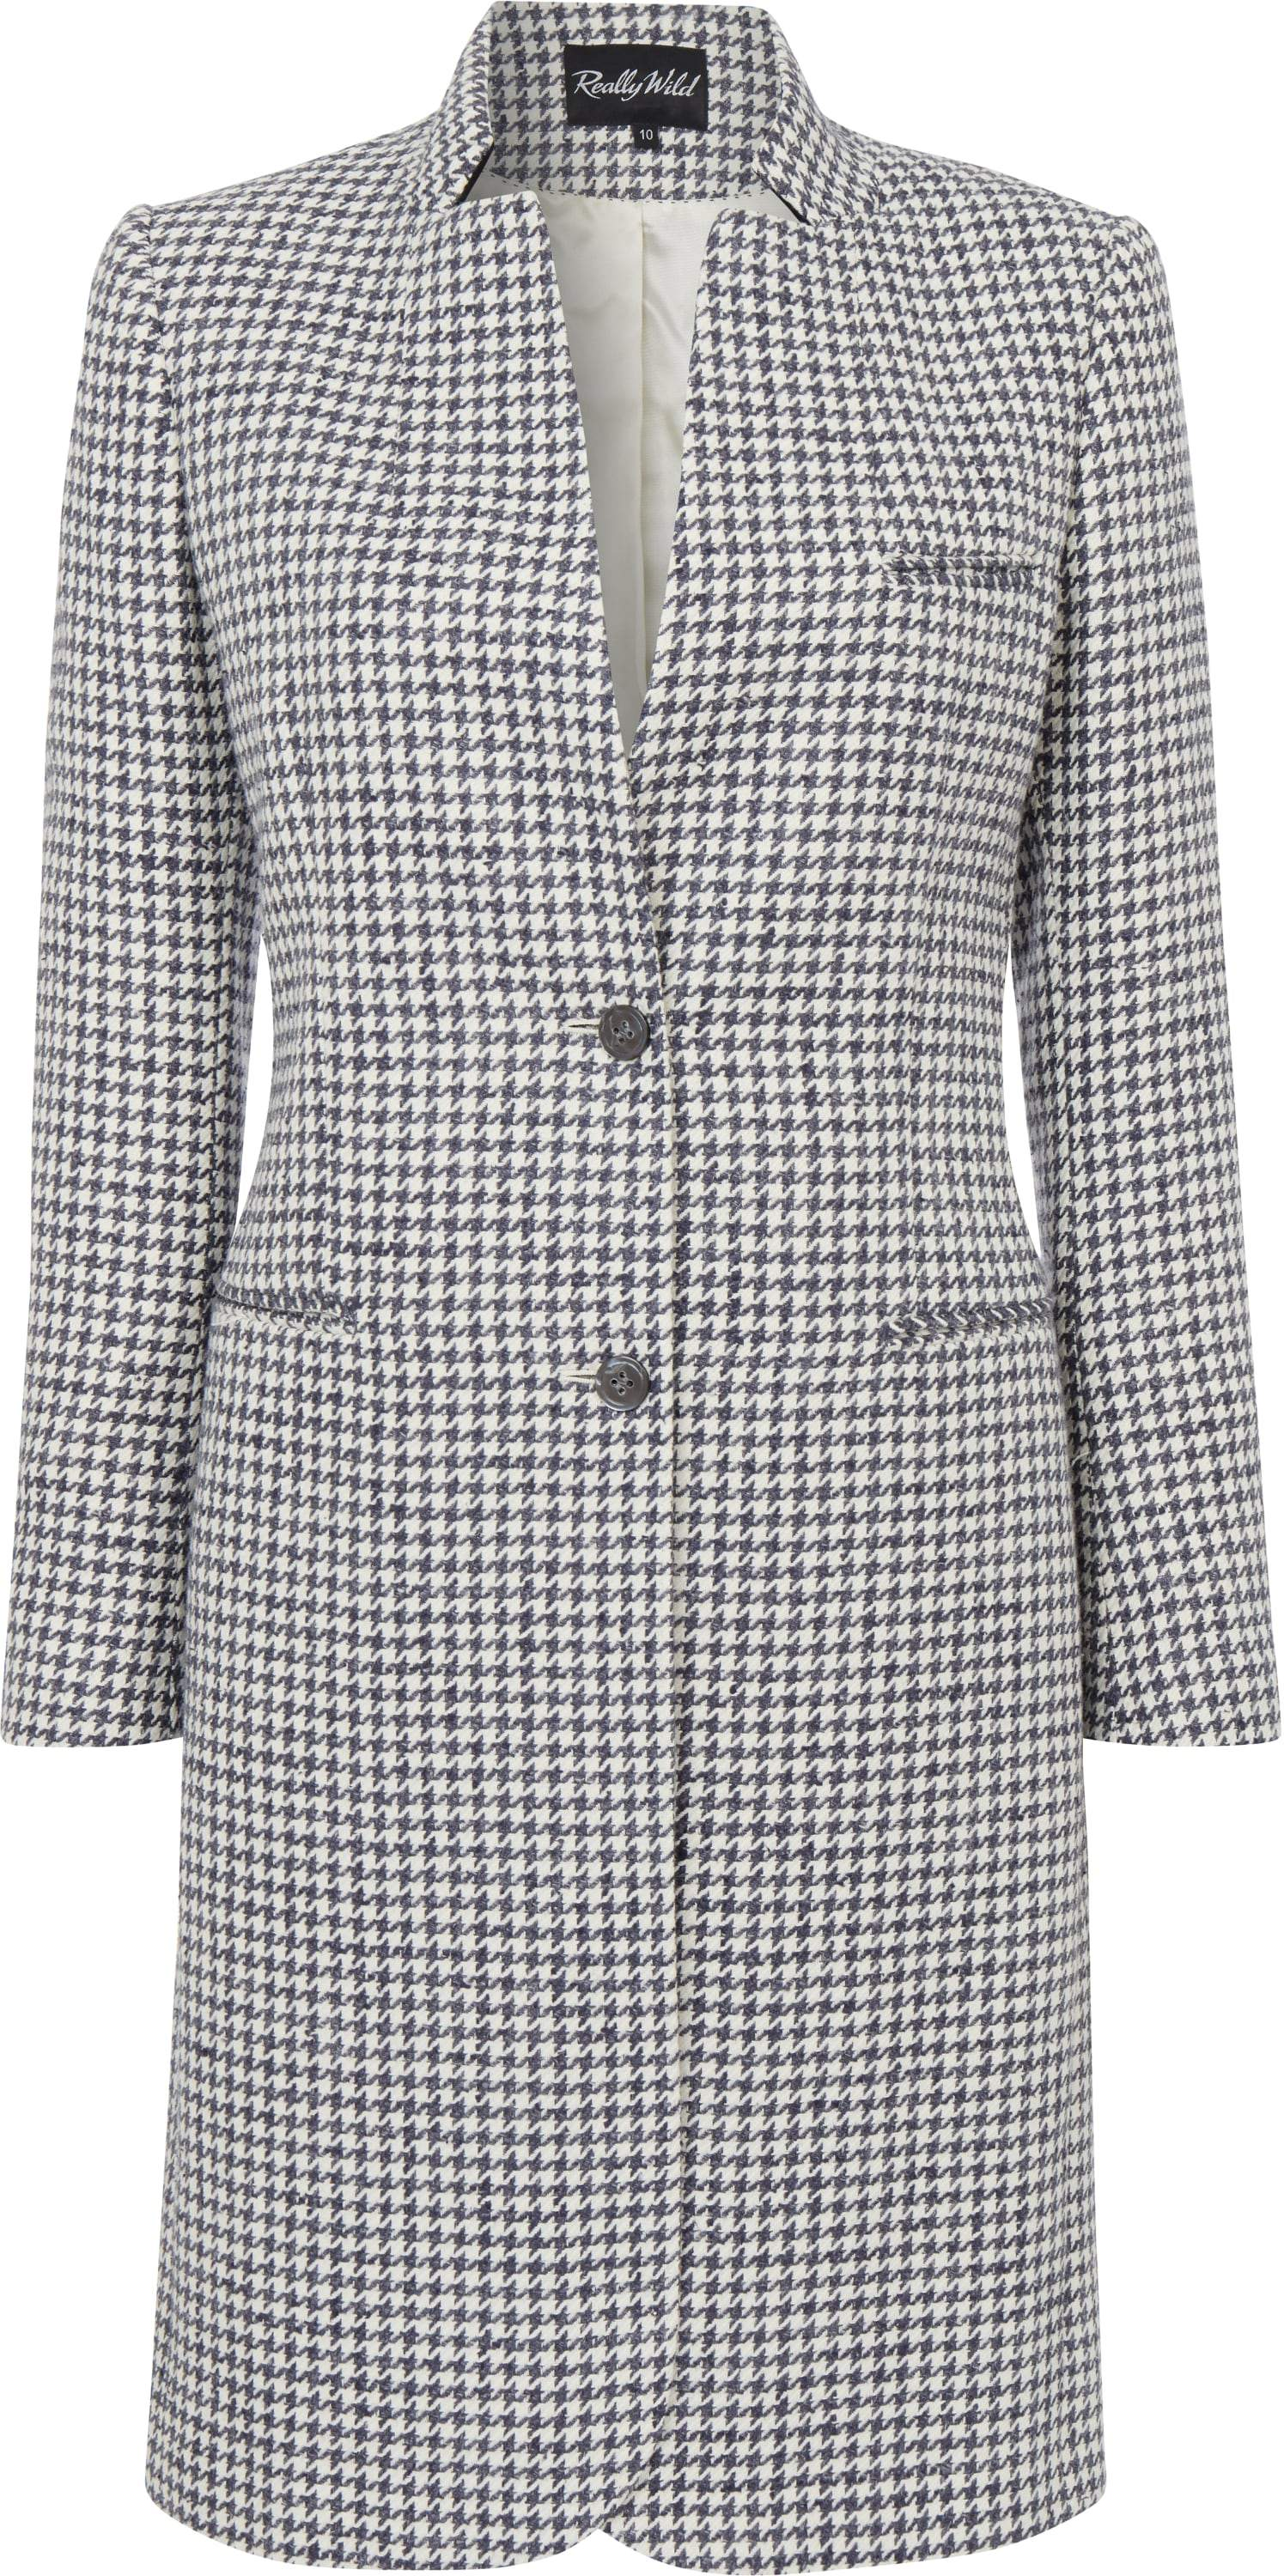 Harrington Tweed coat, Denim Ivory Dogtooth